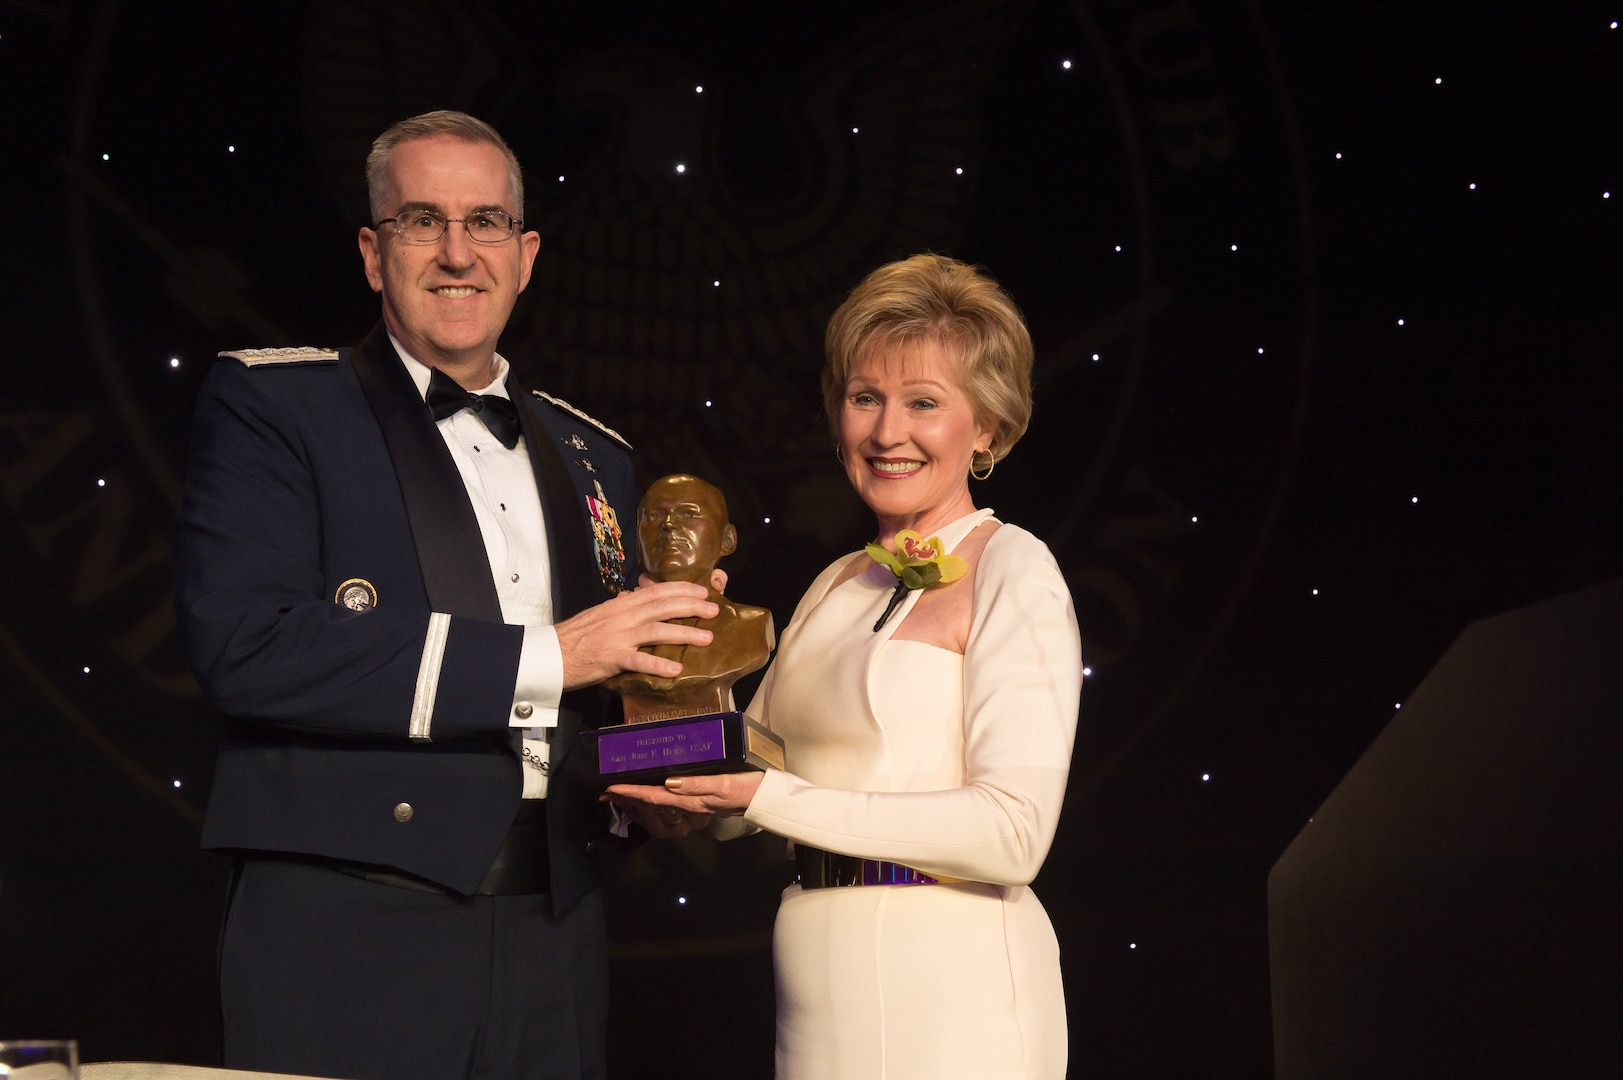 National Space Club & Foundation Board of Director President Sandy Coleman presents U.S. Air Force Gen. John Hyten the Dr. Robert H. Goddard Memorial Trophy at the 61st Annual Robert H. Goddard Memorial Dinner in Washington, D.C., March 16, 2018. Hyten was honored for his distinguished military career and his ongoing efforts dedicated to the National Security Space Enterprise.